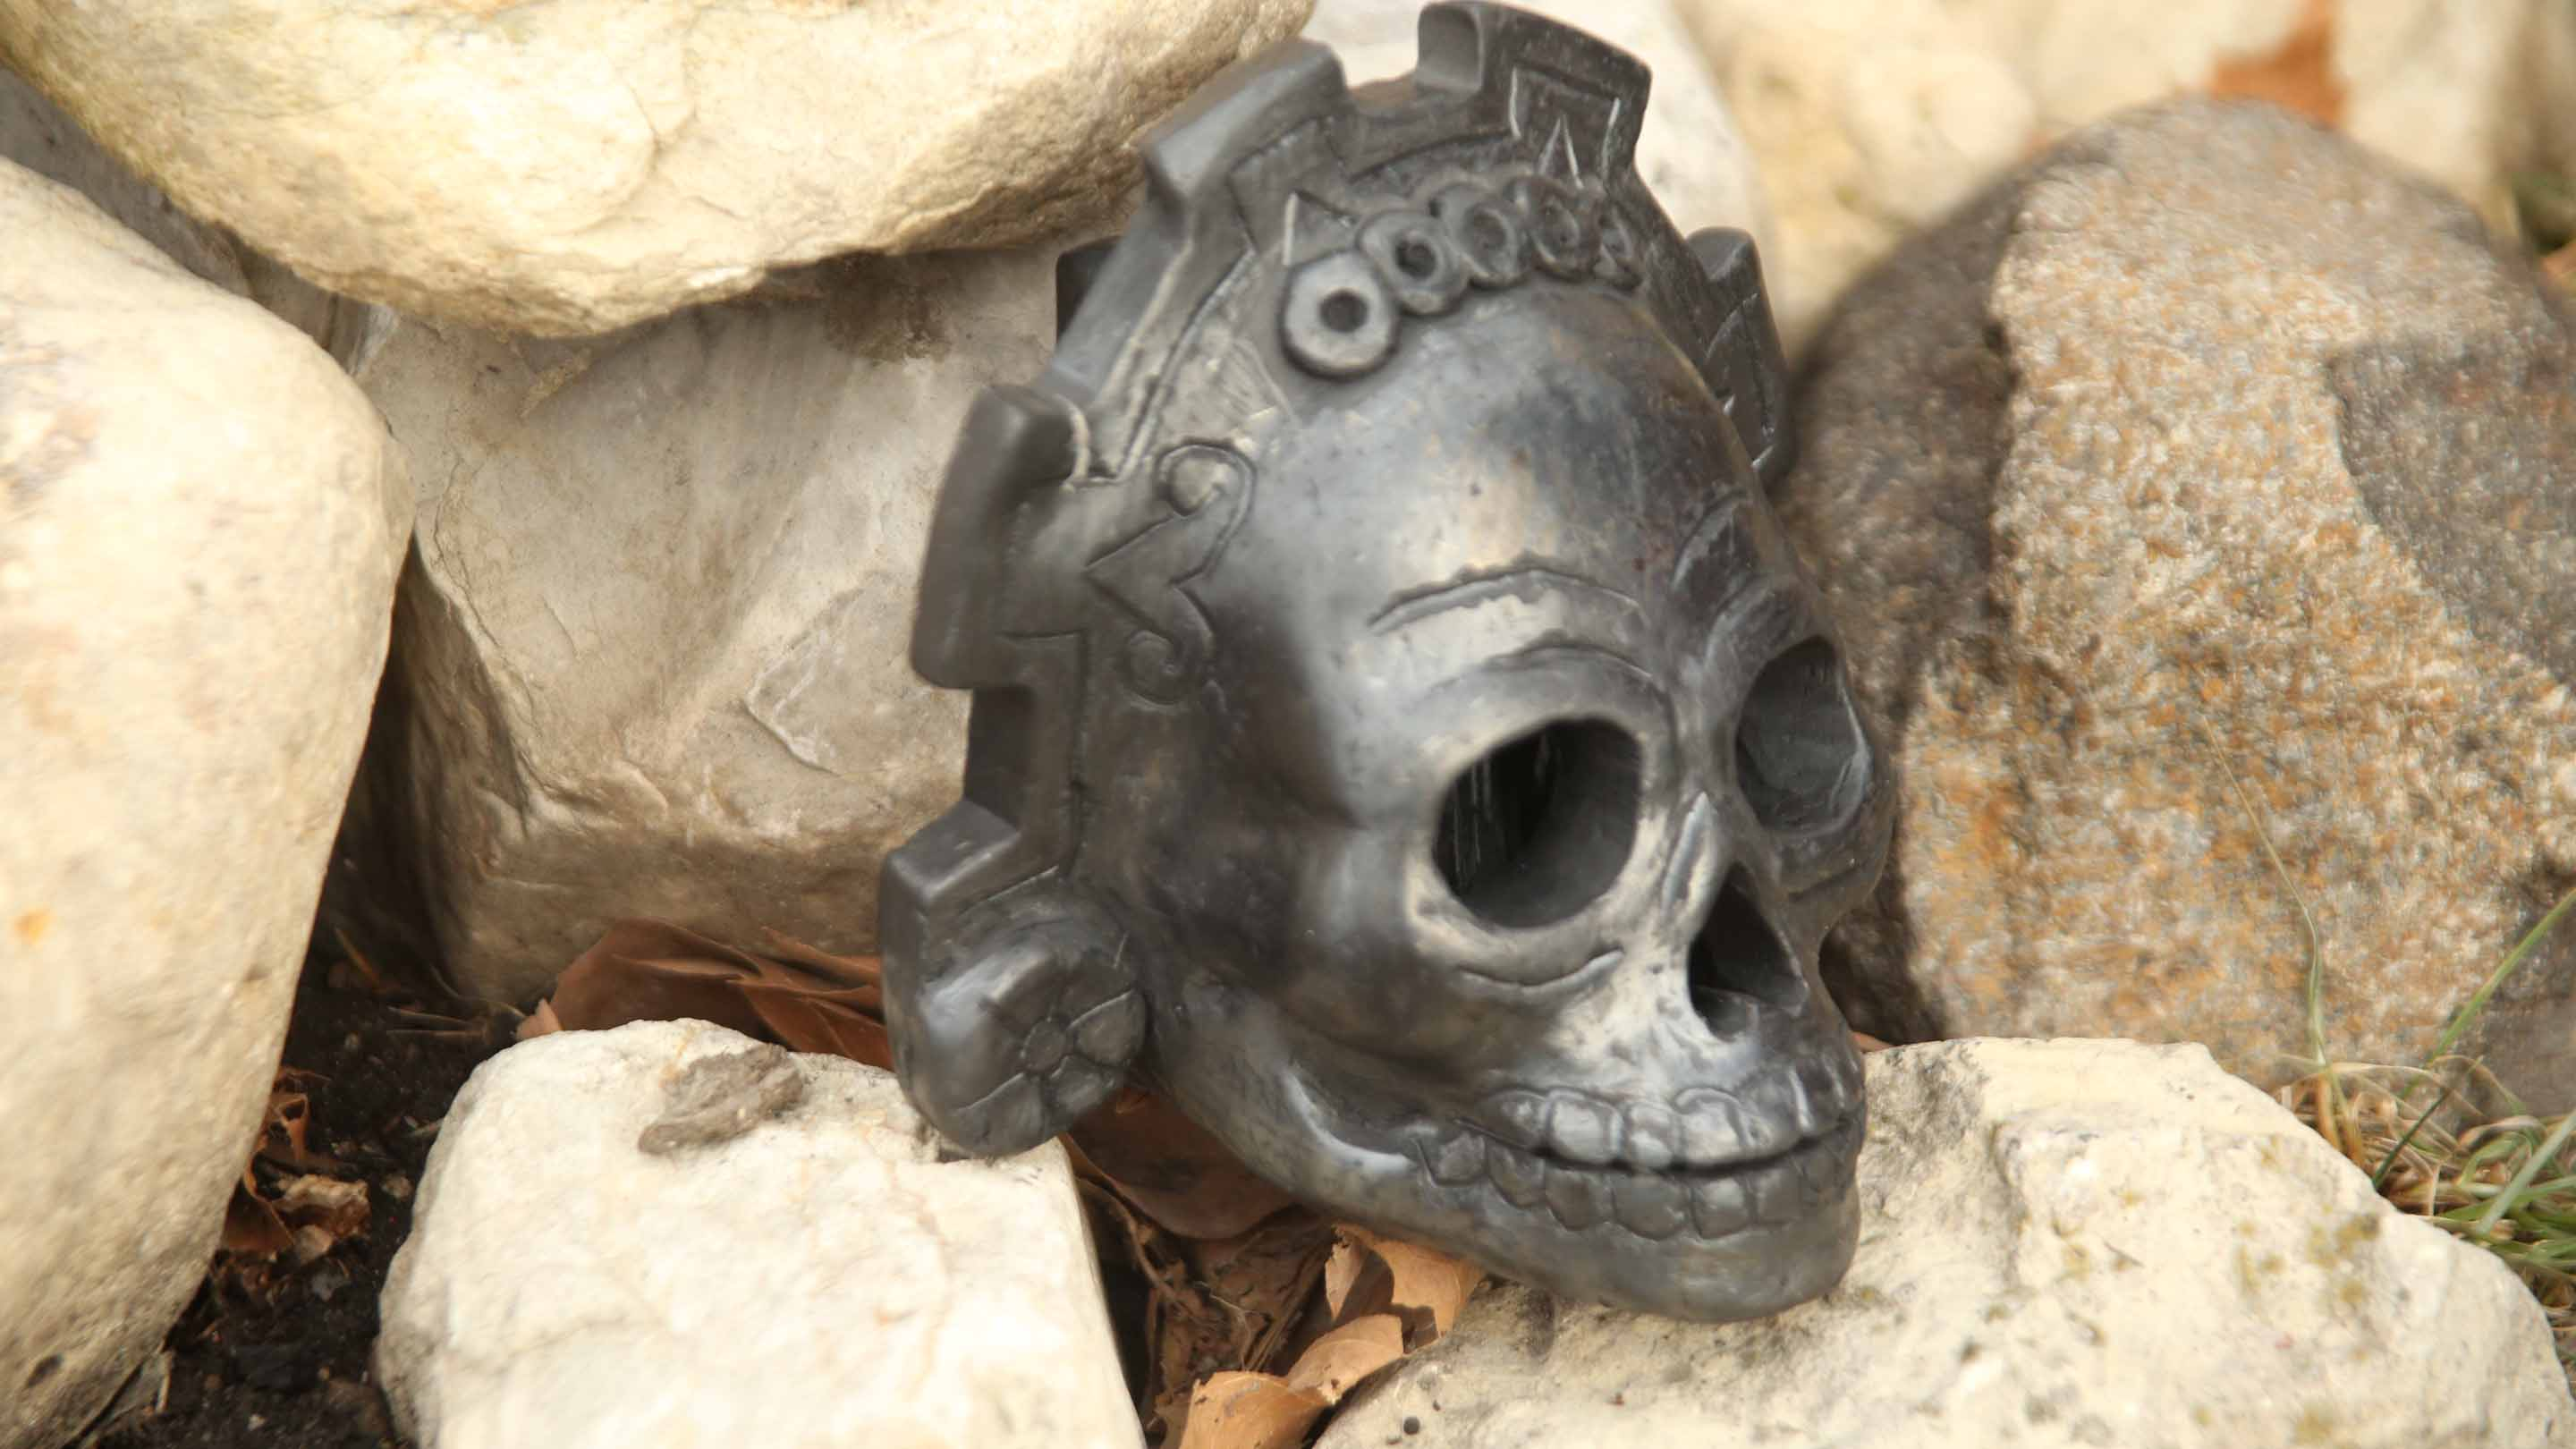 New Aztec Death Whistle 2019 scary frightening sounds gut wrenching  hurdeling scream!